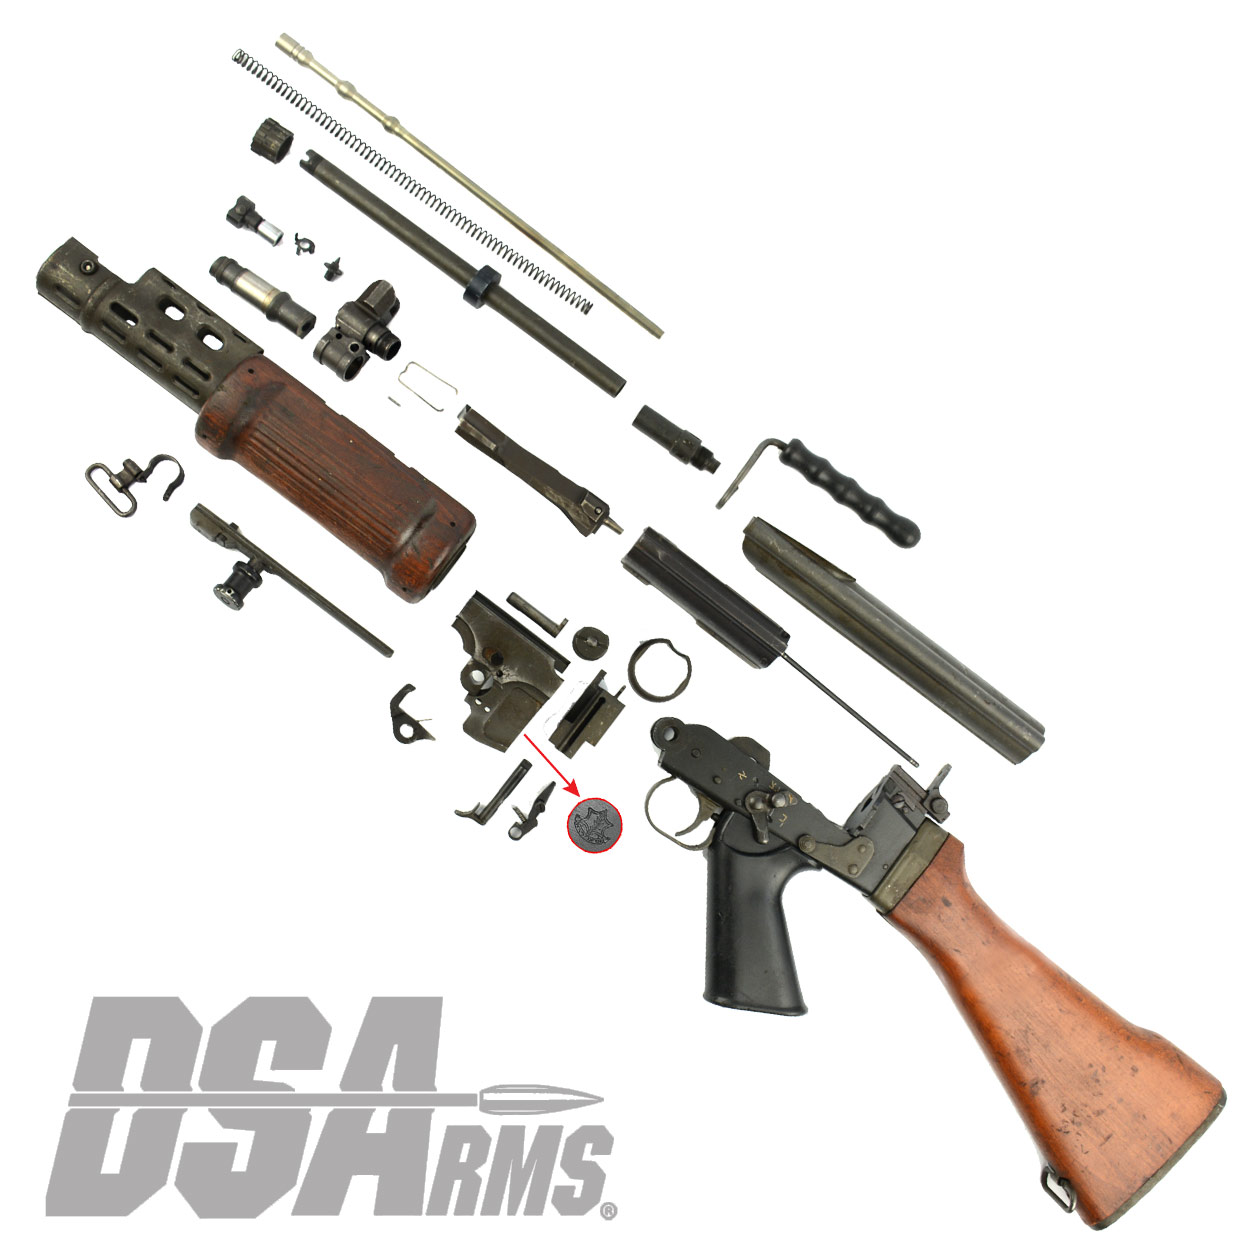 Israeli Light Barrel Pattern Complete FAL Parts Kit - Used, Good Condition  Israeli Light Barrel Pattern Complete FAL Parts Kit - Used, Good Condition